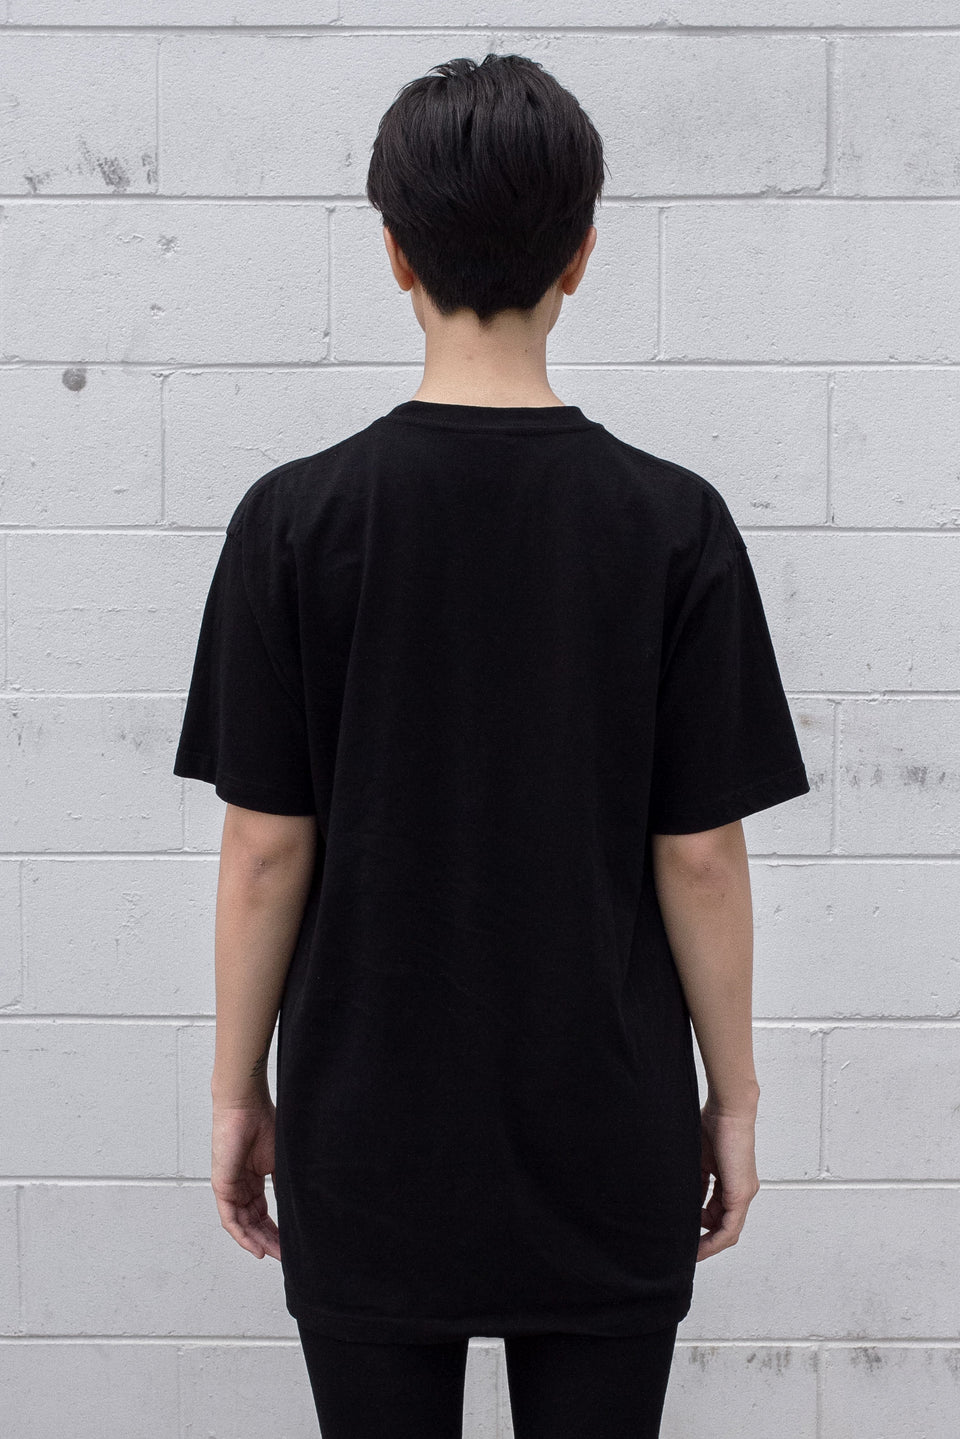 Singularity Black Tee